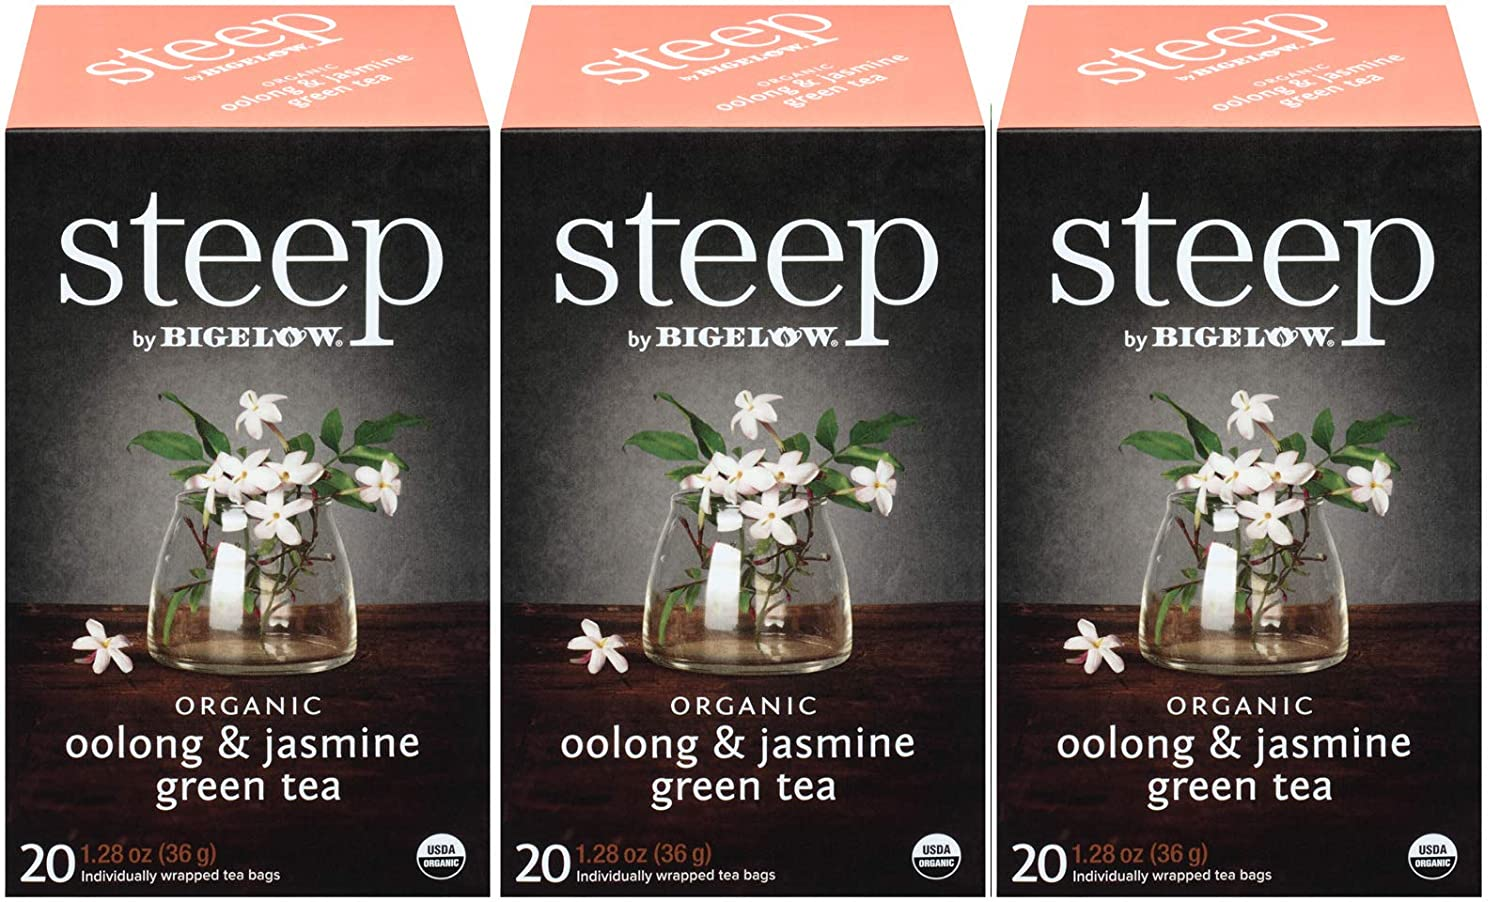 steep Organic Oolong with Jasmine Green 20 Count Box (Pack of 3), Certified Organic, Gluten-Free, Kosher Tea in Foil-Wrapped Bags